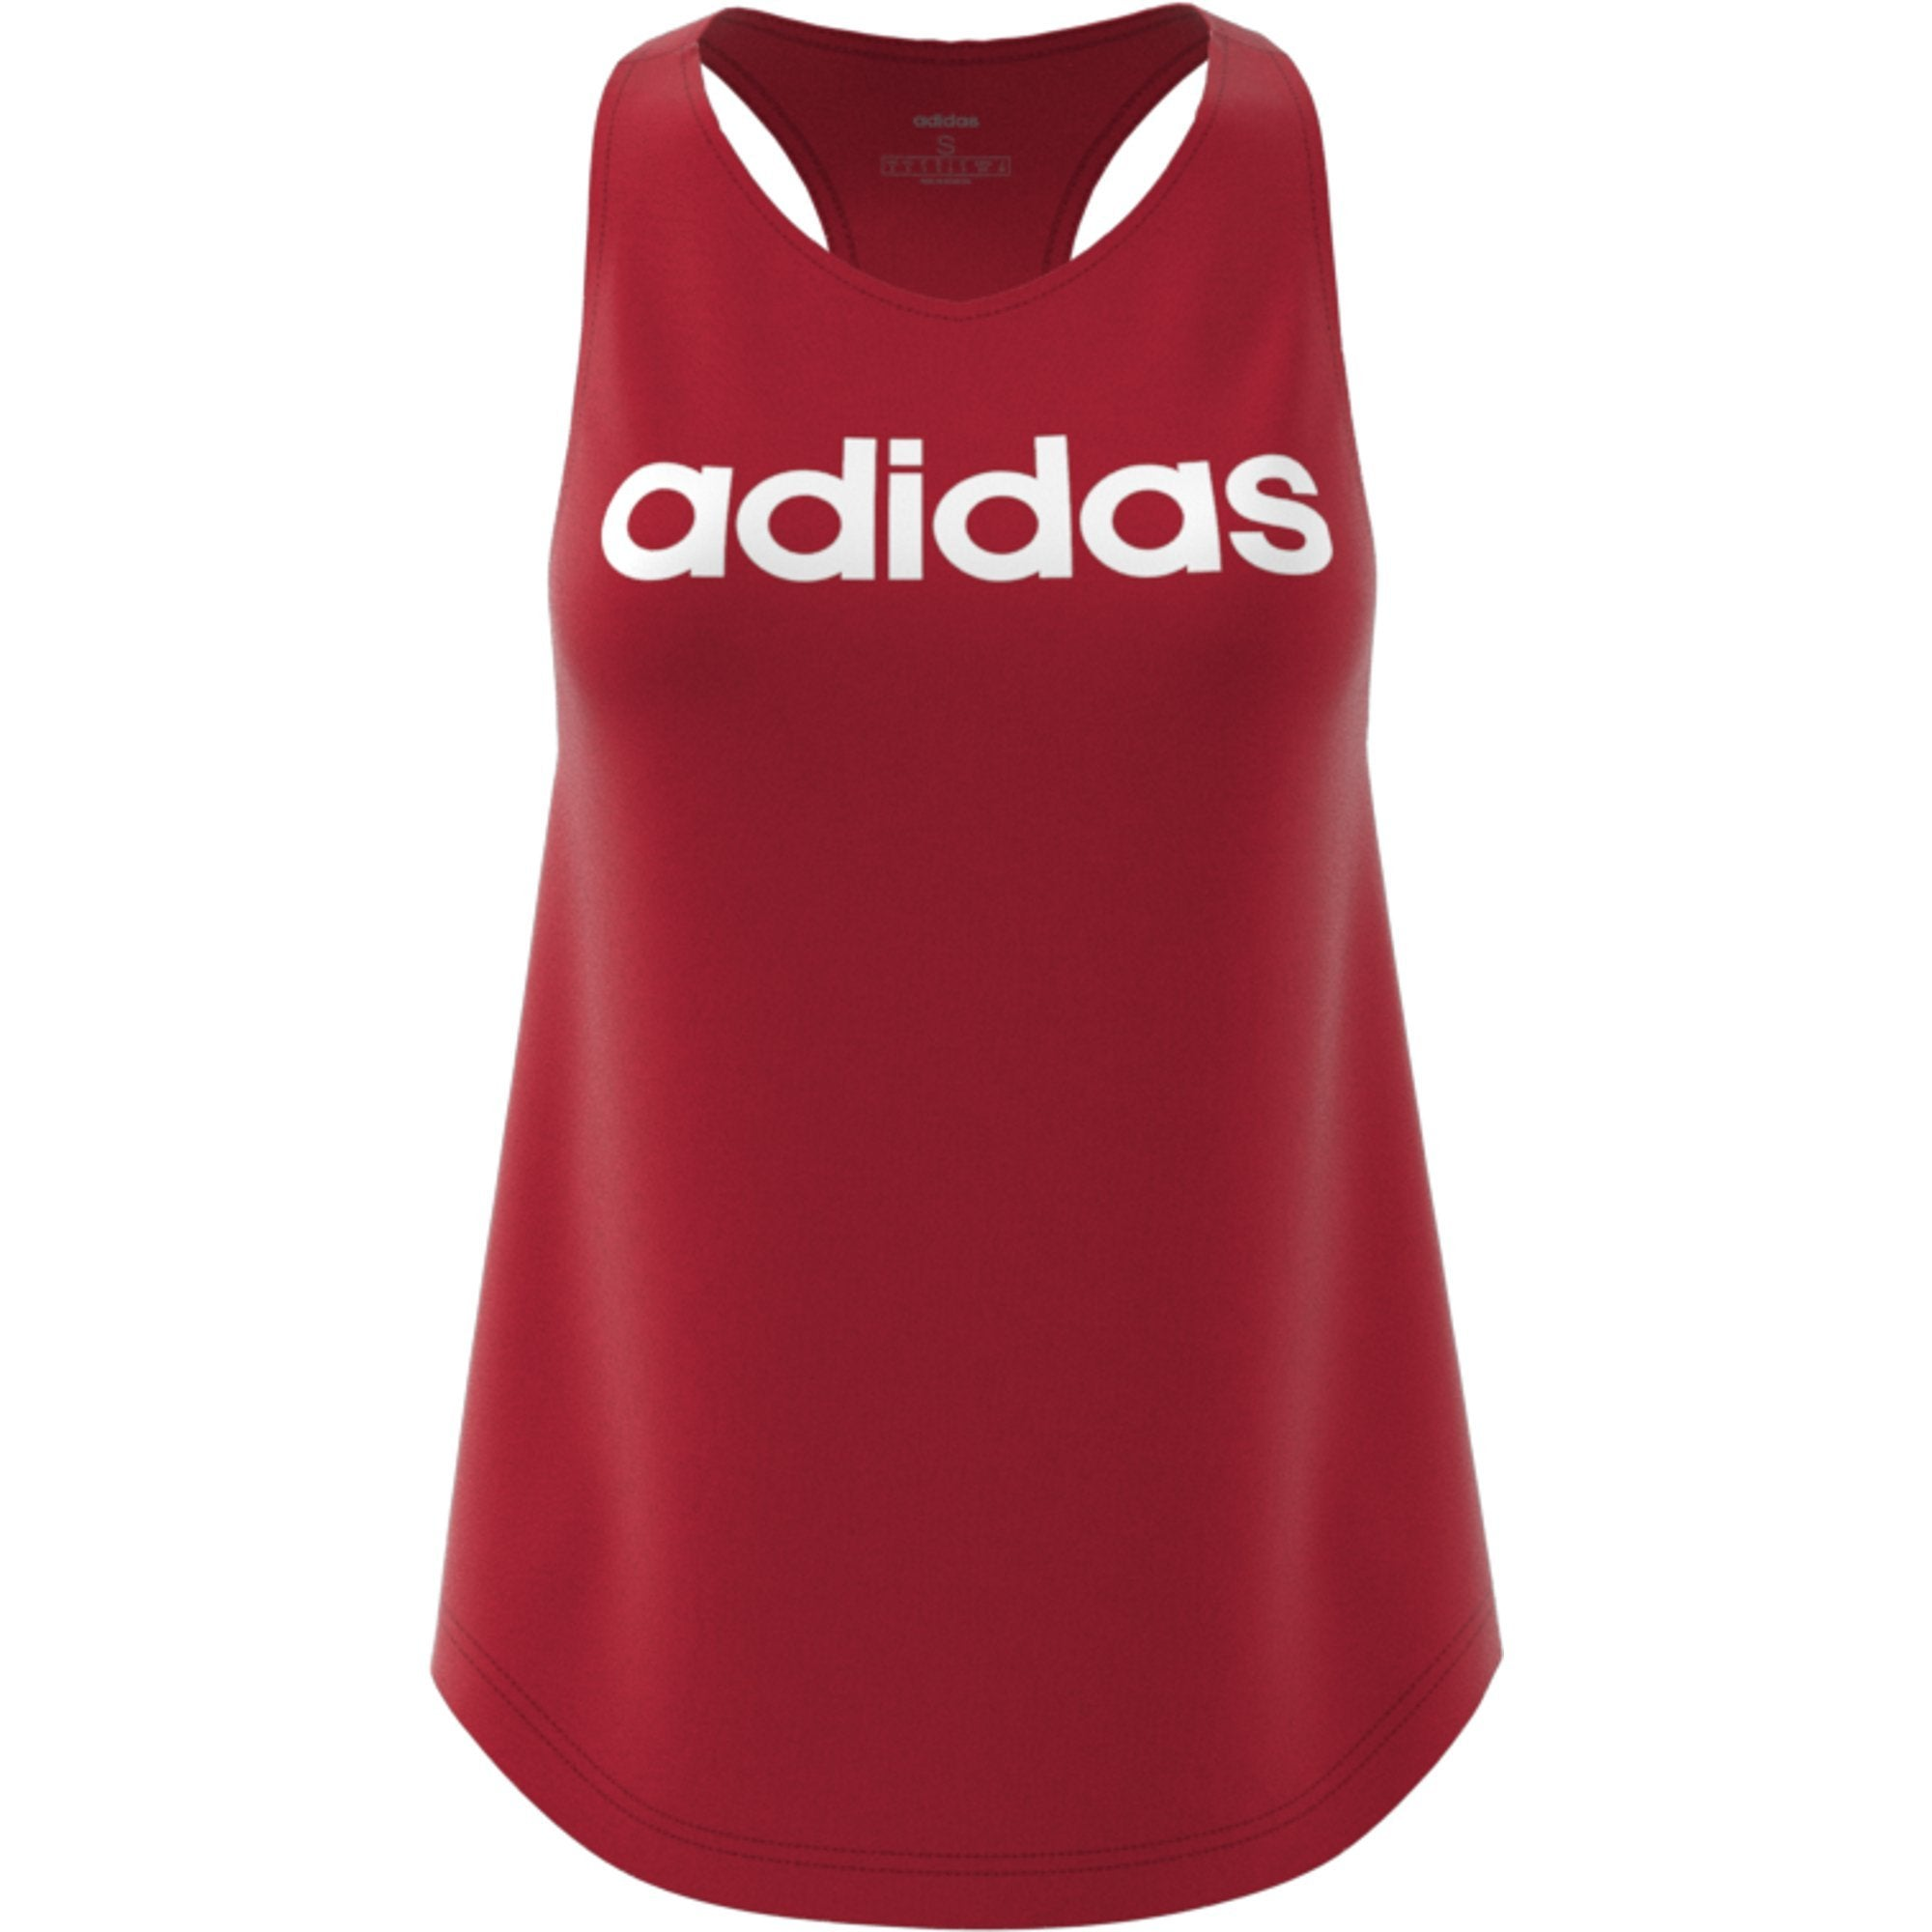 Adidas Womens Essentials Linear Tank Top - active maroon-white Womens Apparel Adidas